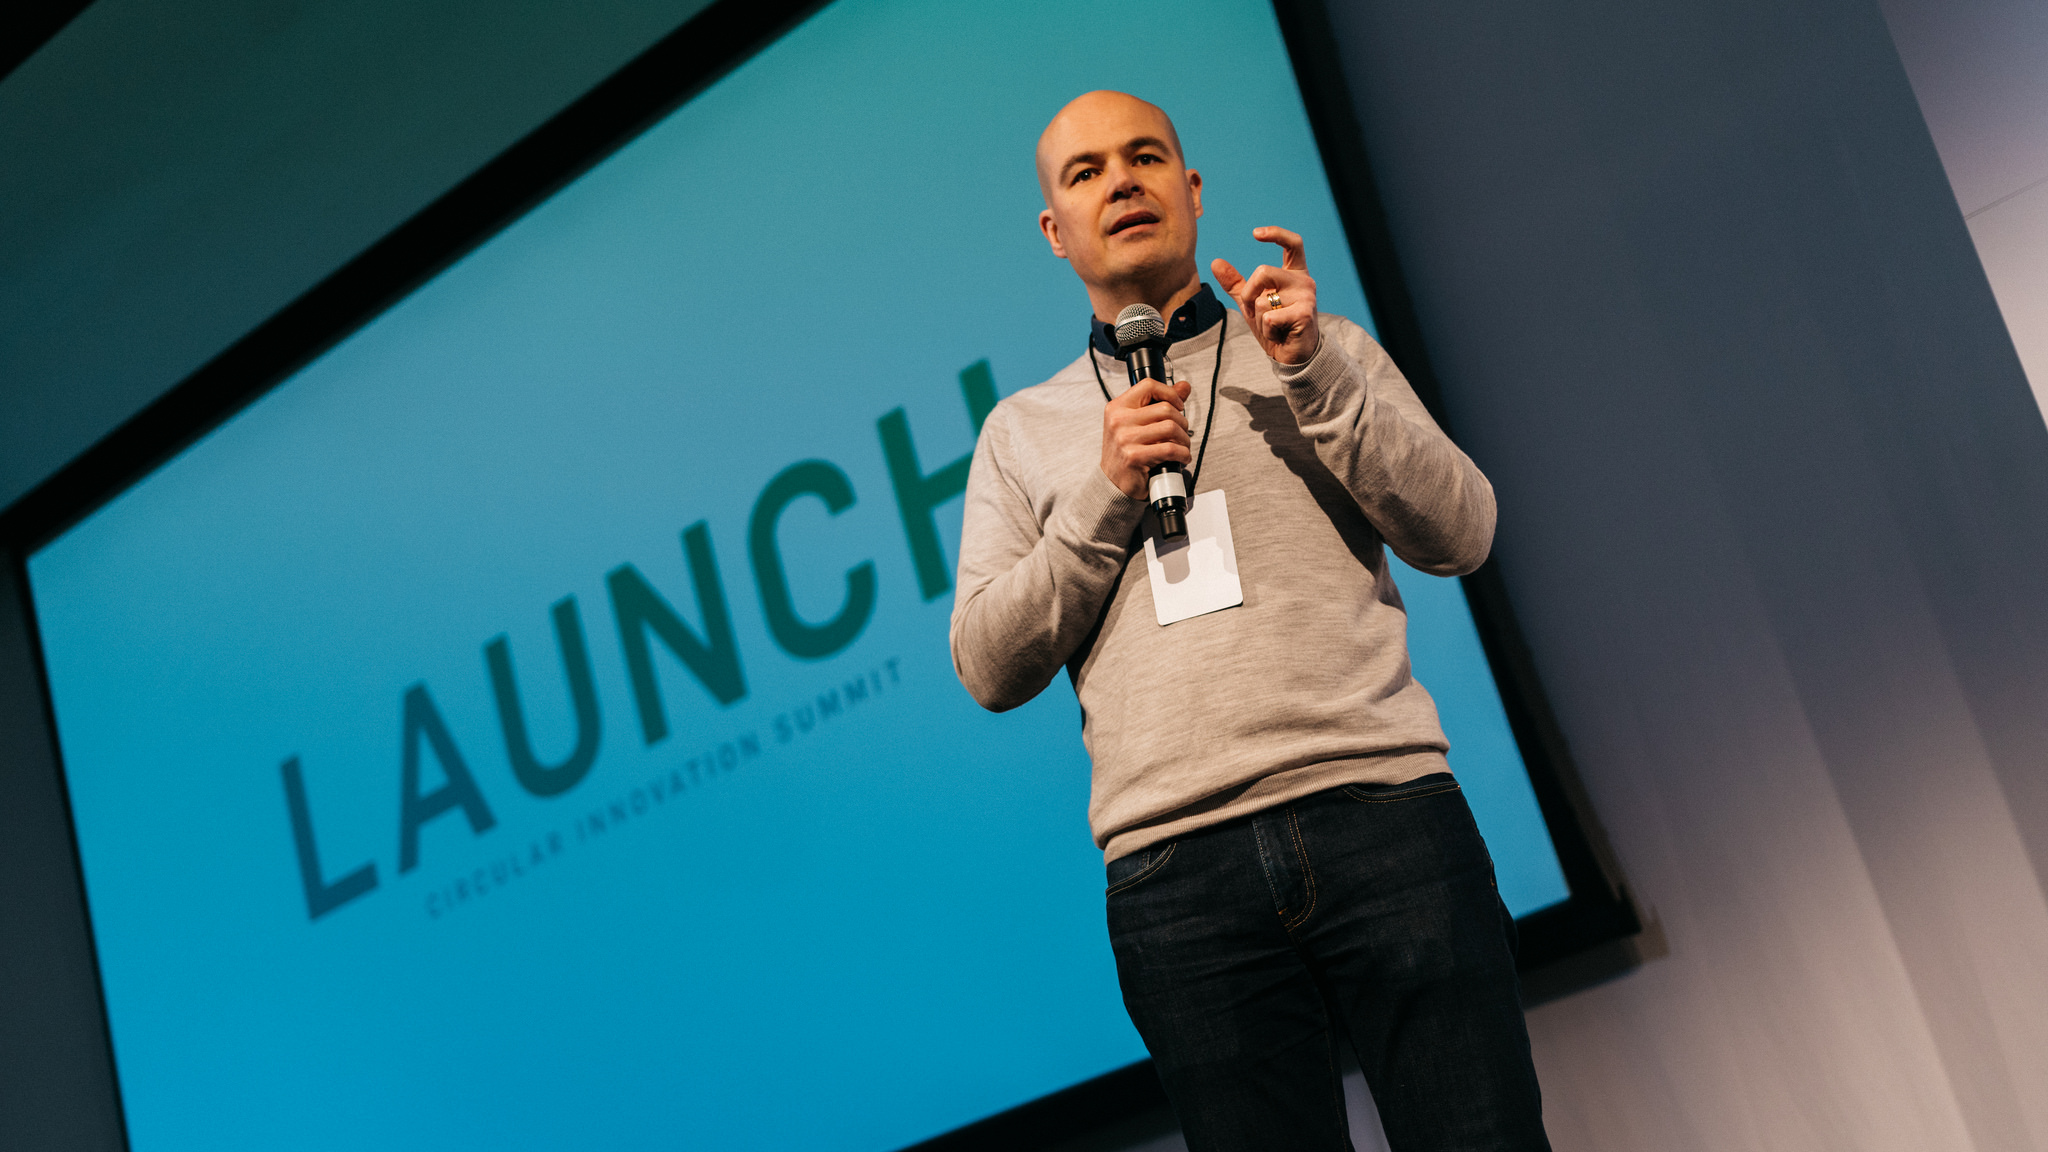 LAUNCH propels startups to $150 million in investment